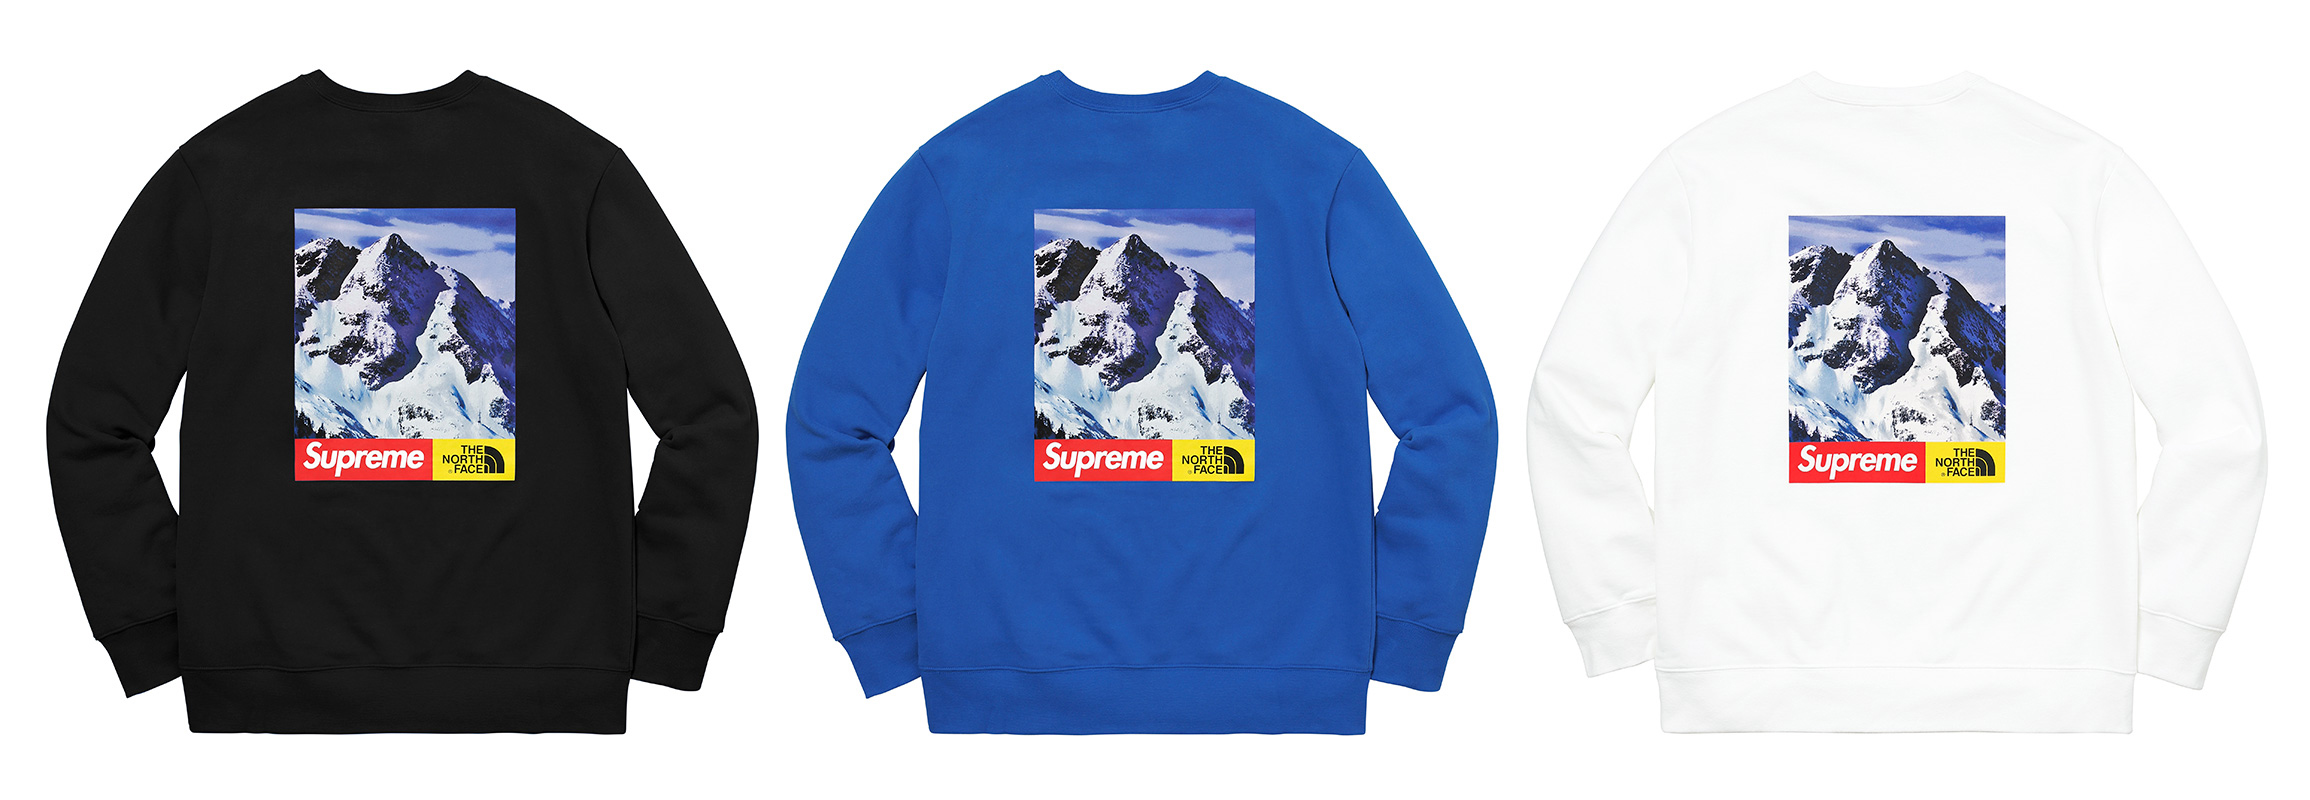 Supreme X The North Face Fall Winter 2017 Hub Style